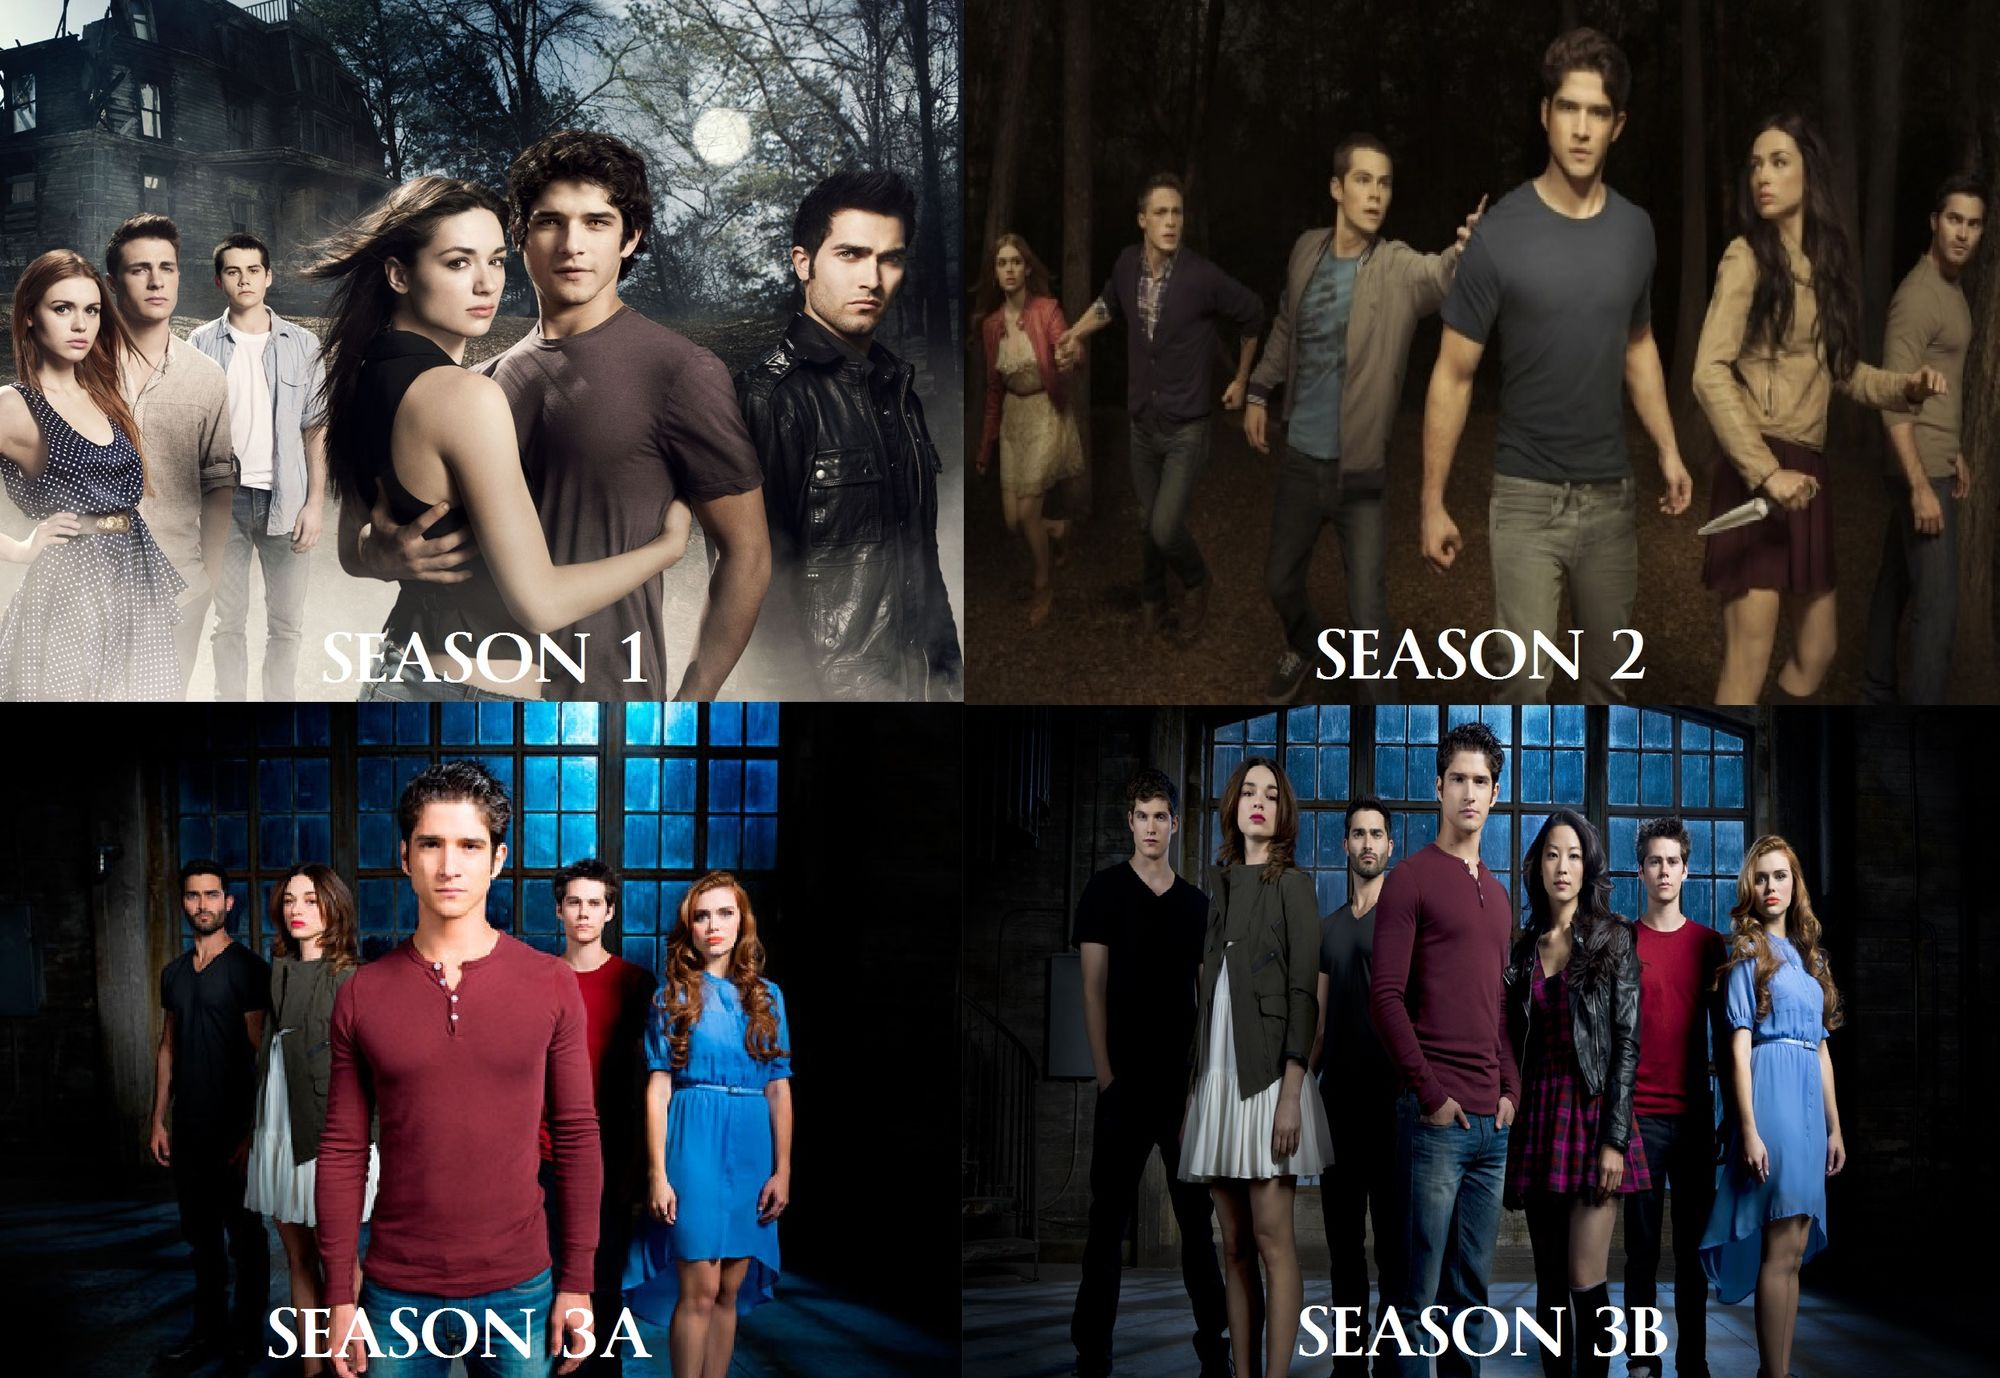 Teen Wolf Season 3 Collage